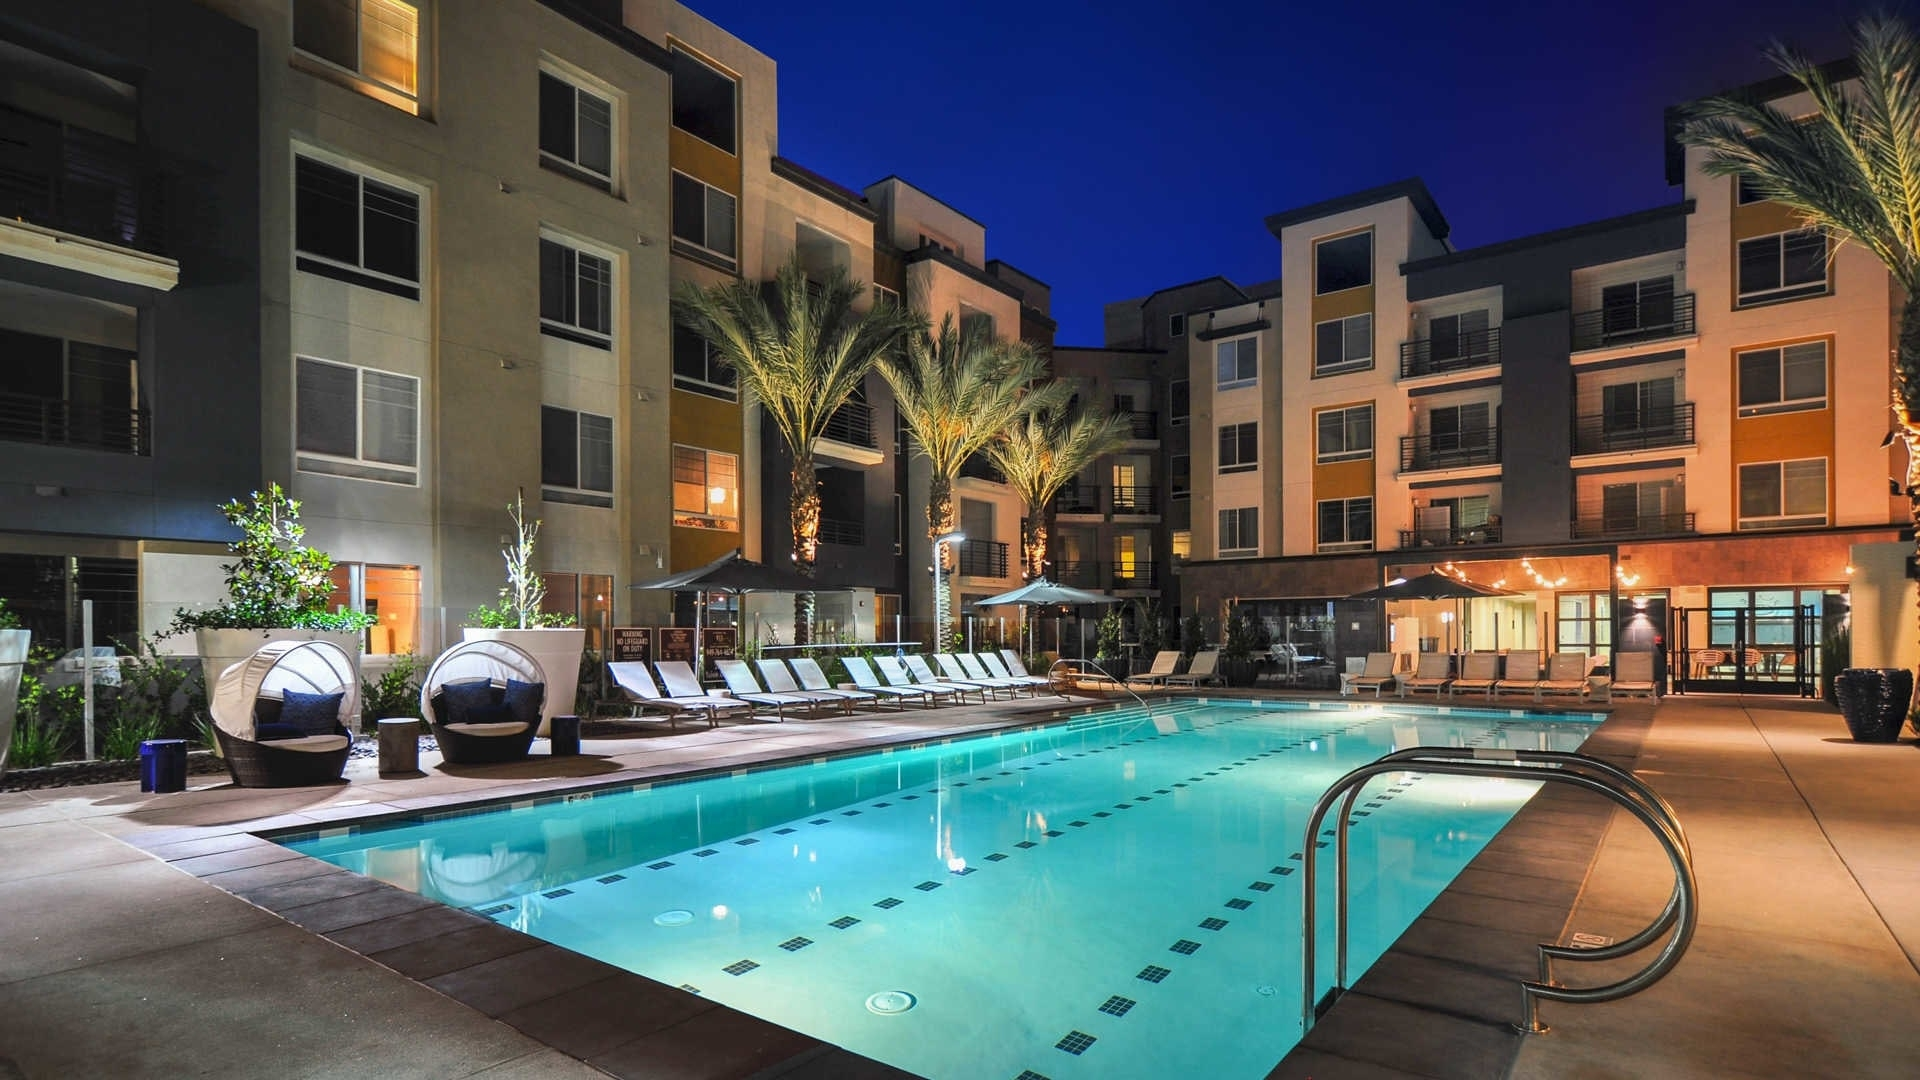 20 Best Apartments For Rent In Irvine, Ca From $870! in The Best Ideas For Apartments For Rent In Garden Grove